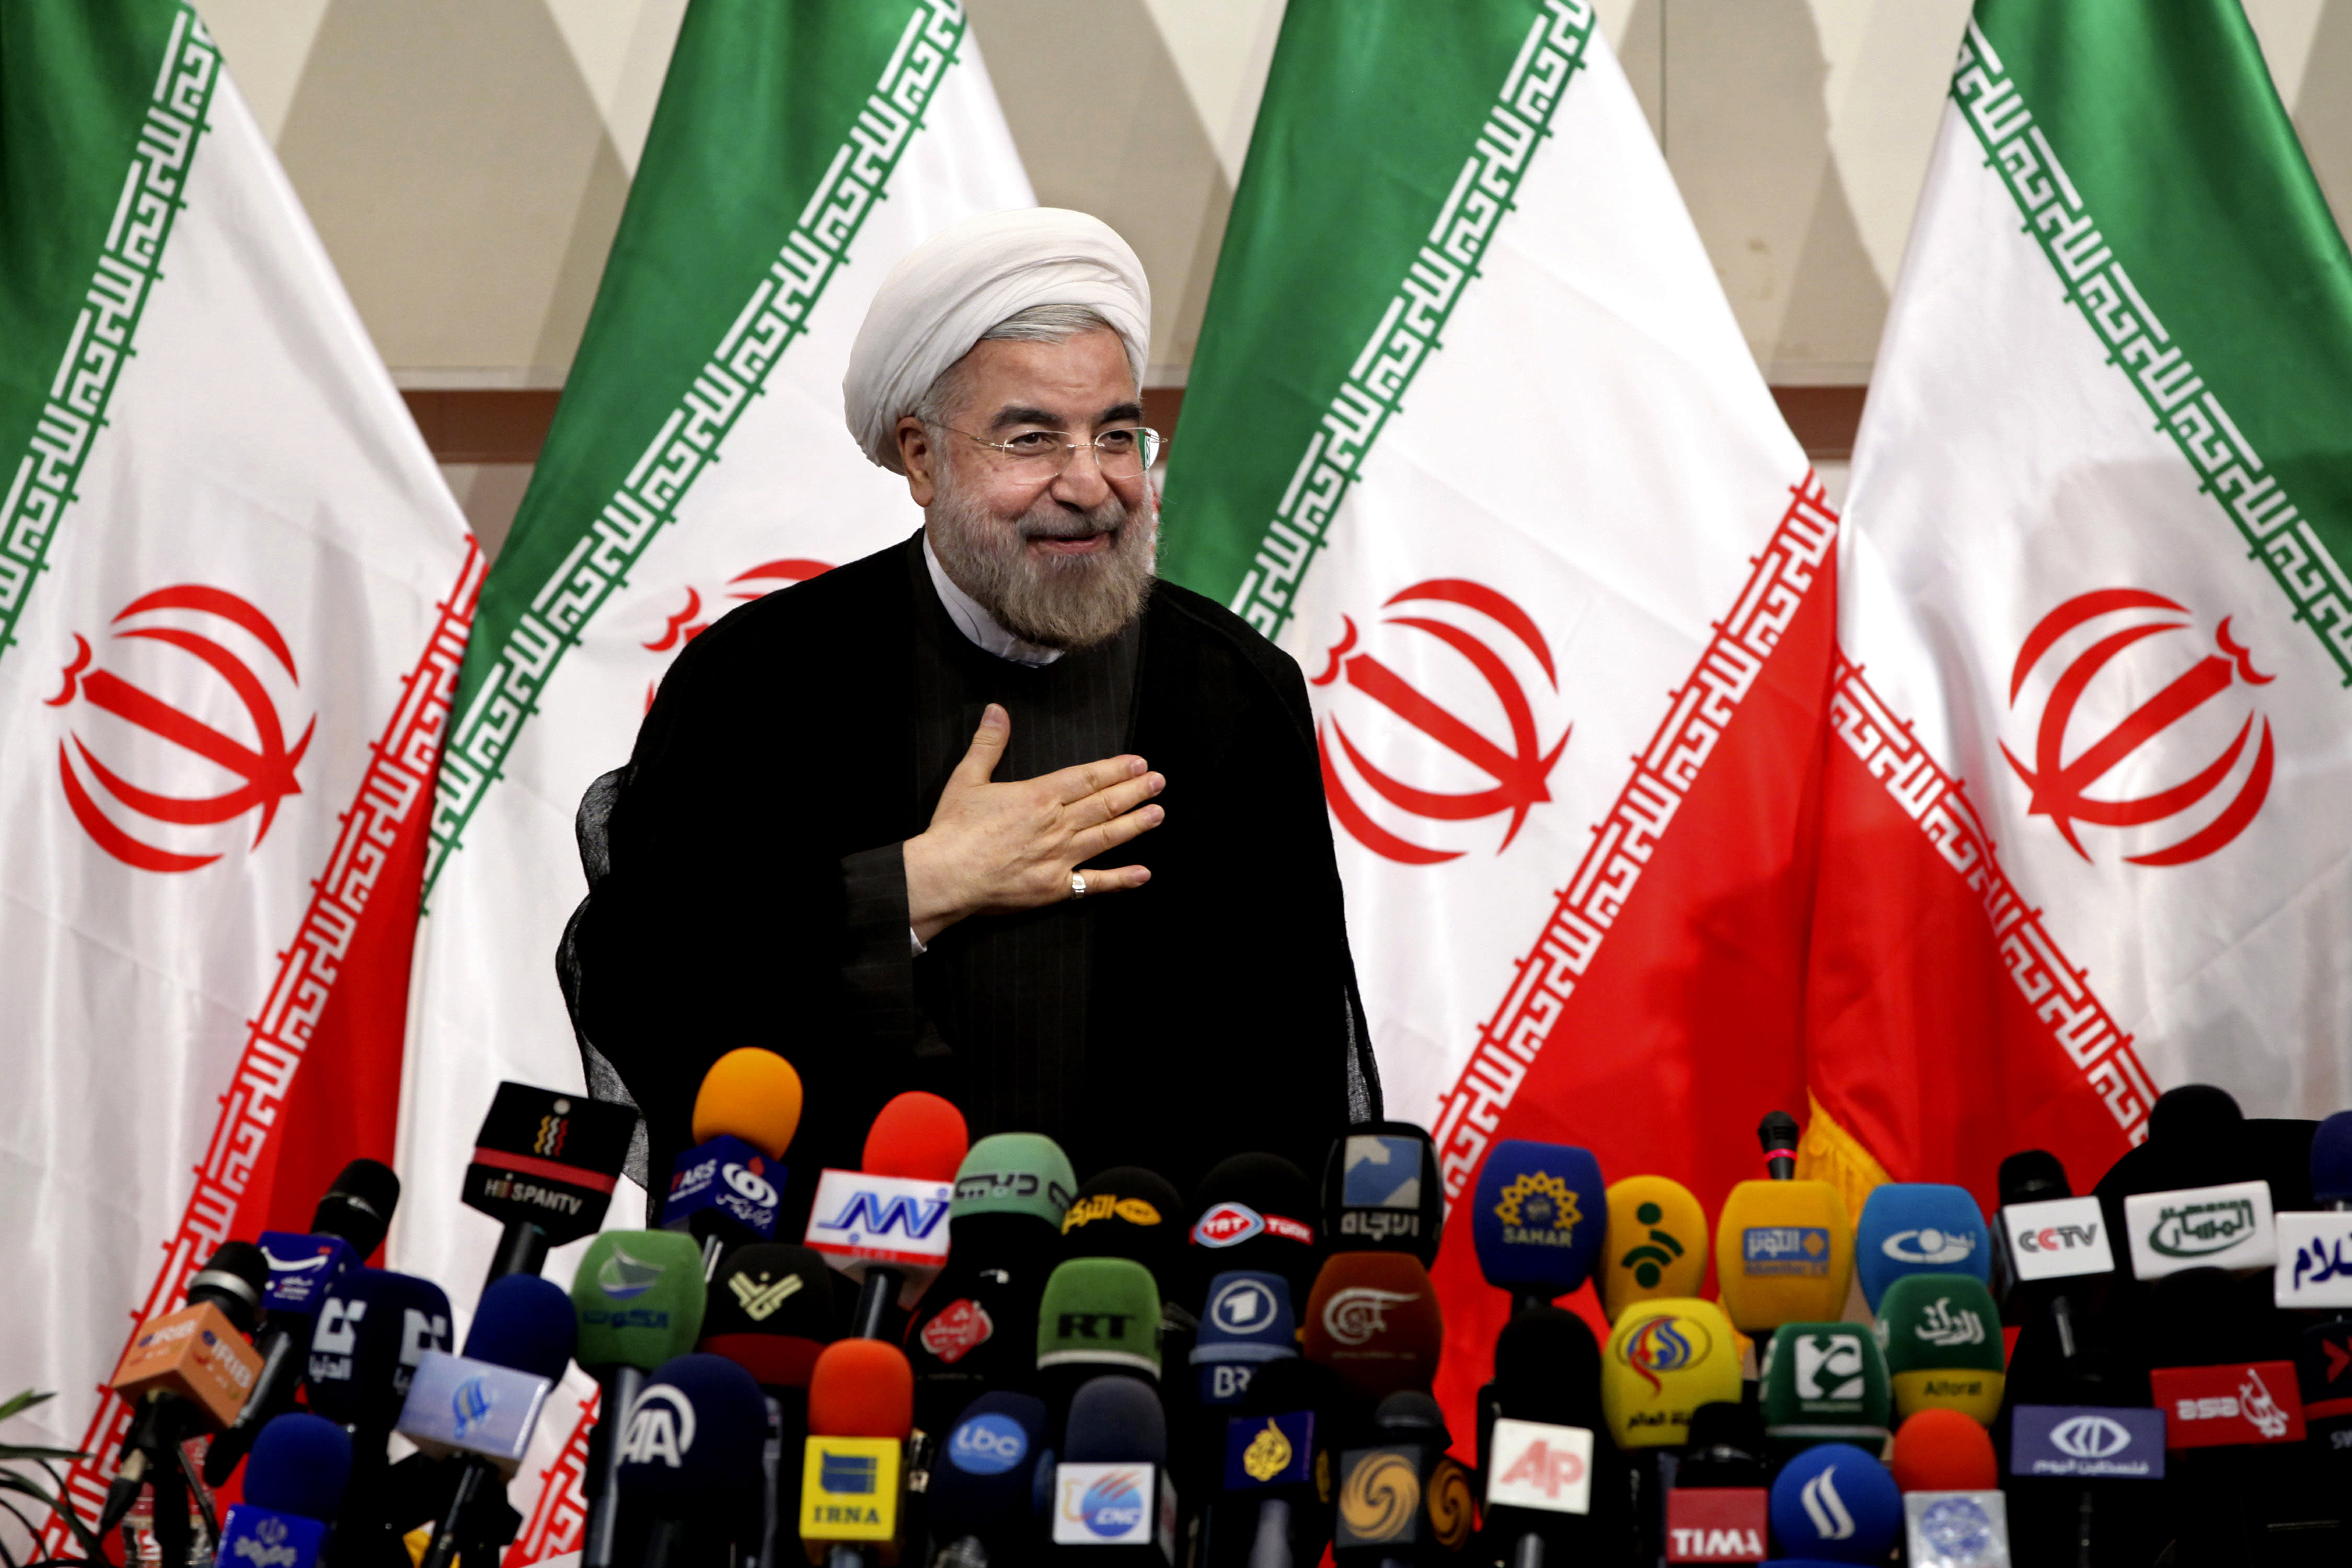 "Iranian newly elected President Hasan Rowhani, places his hand on his heart as a sign of respect, after speaking at a press conference, in Tehran, Iran, Monday, June 17, 2013. Rowhani showcases his reformist image by promising a ""path of moderation,"" the easing of nuclear tensions and steps to narrow the huge divide with the United States. He also make clear where he won't go, saying he opposes any halt to uranium enrichment, at the heart of the nuclear standoff. (AP Photo/Ebrahim Noroozi)"